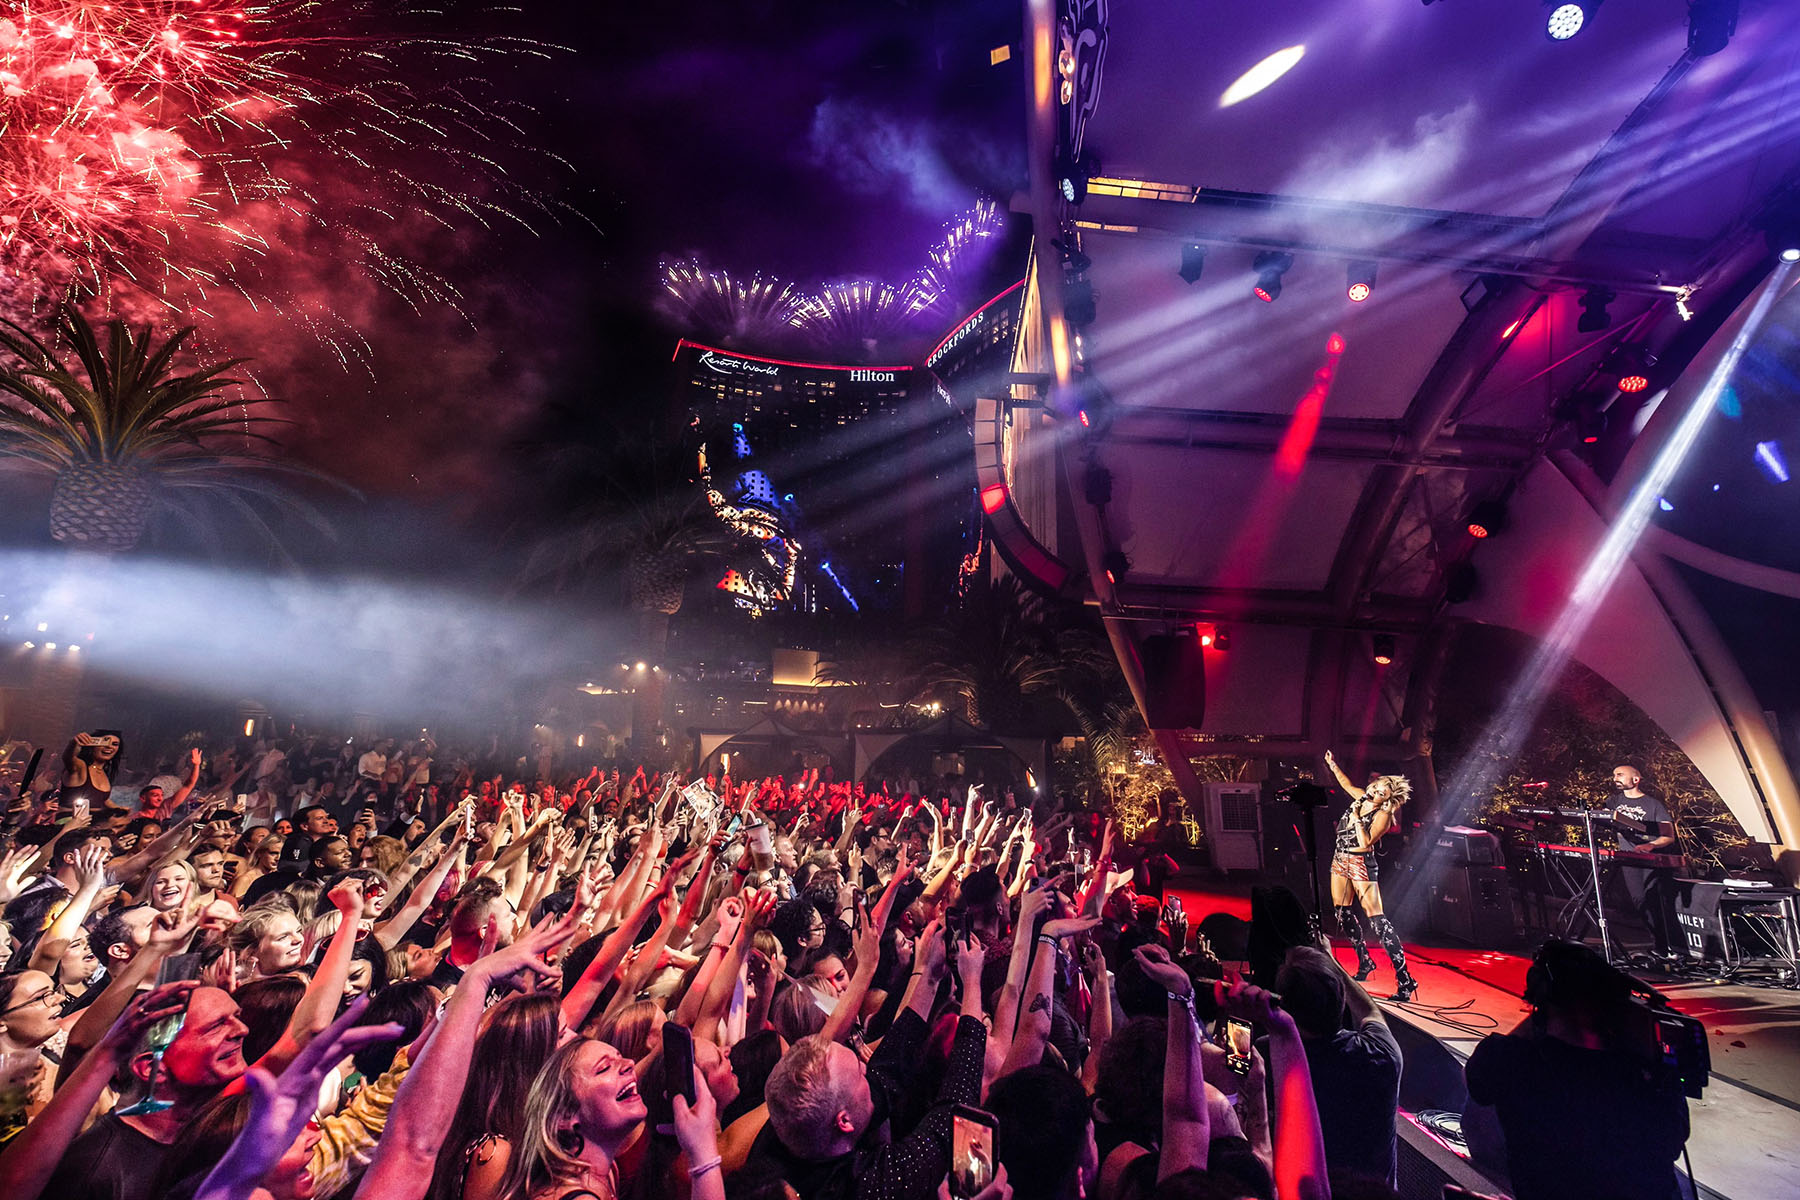 L-Acoustics Allows Resorts World Las Vegas Venues to Go From Morning to Night Without Skipping a Beat featured image